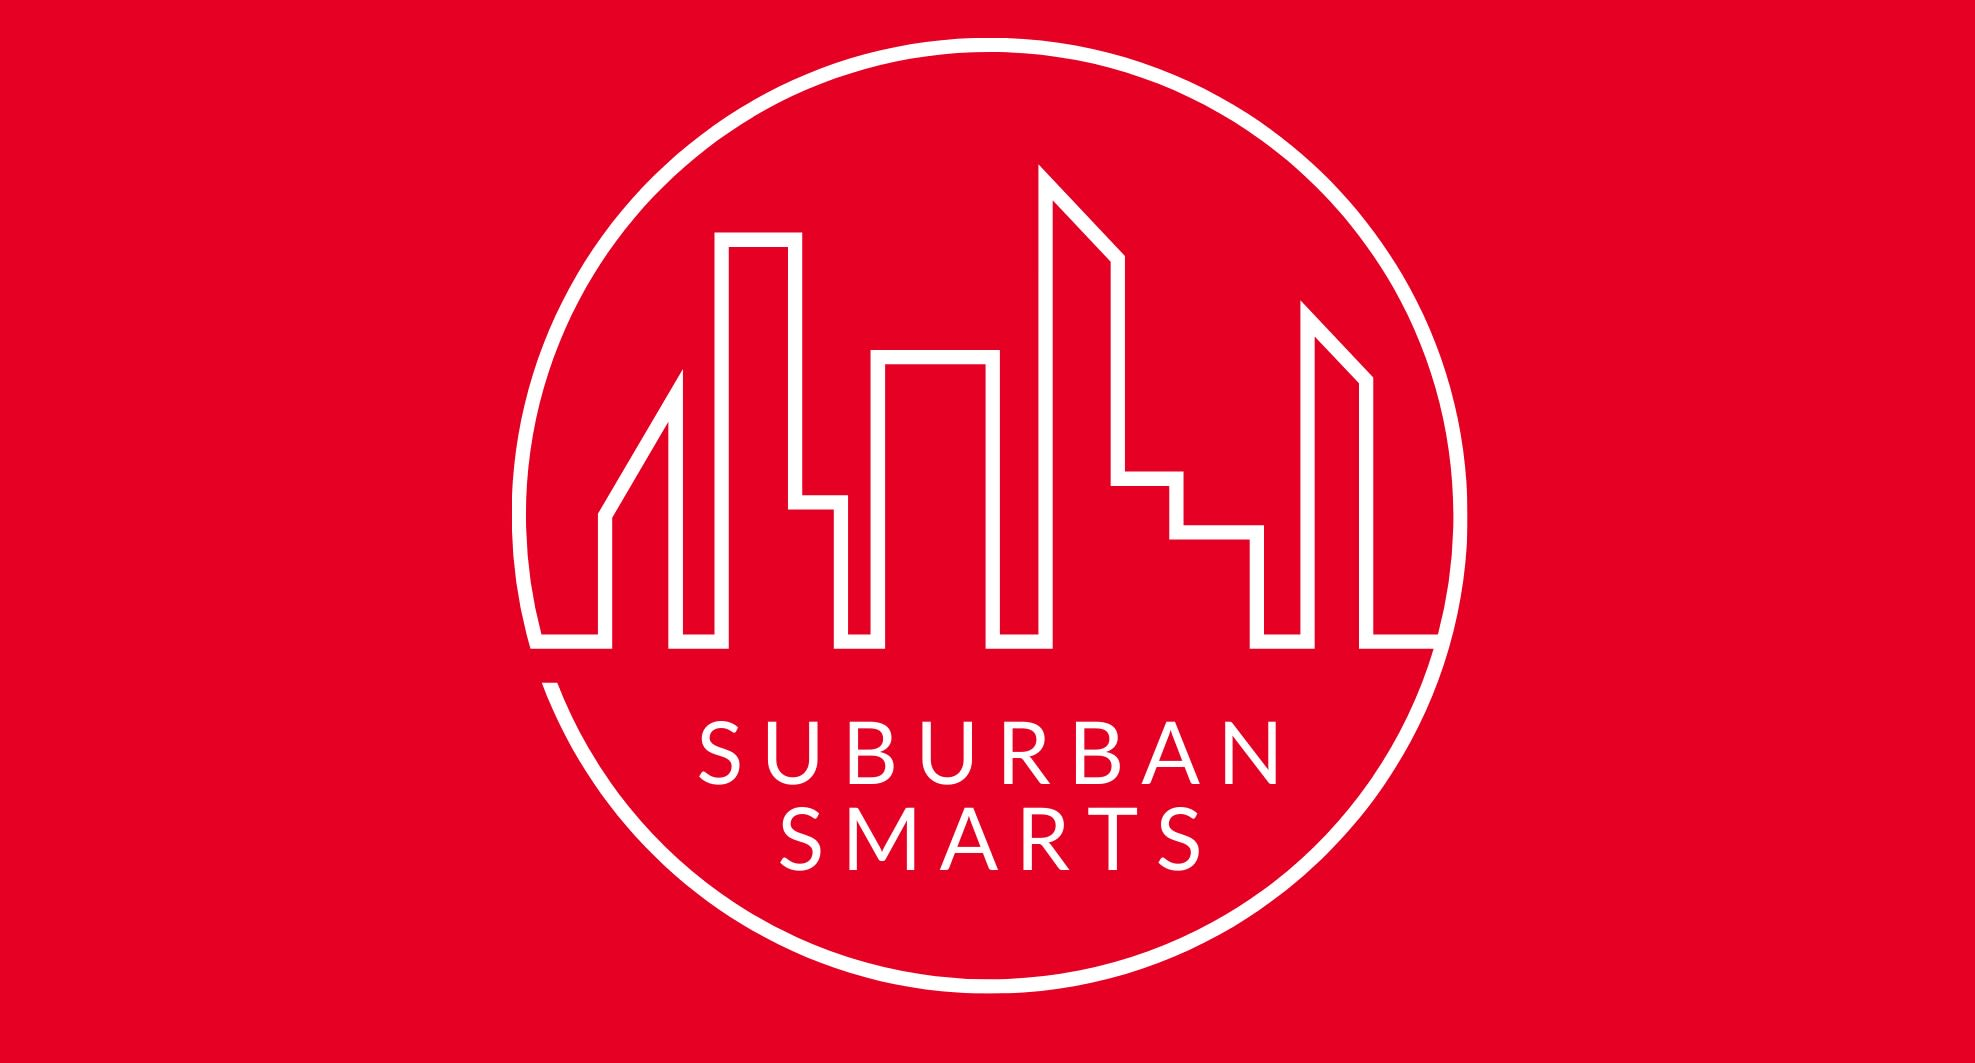 Hey there. This is Suburban Smarts.